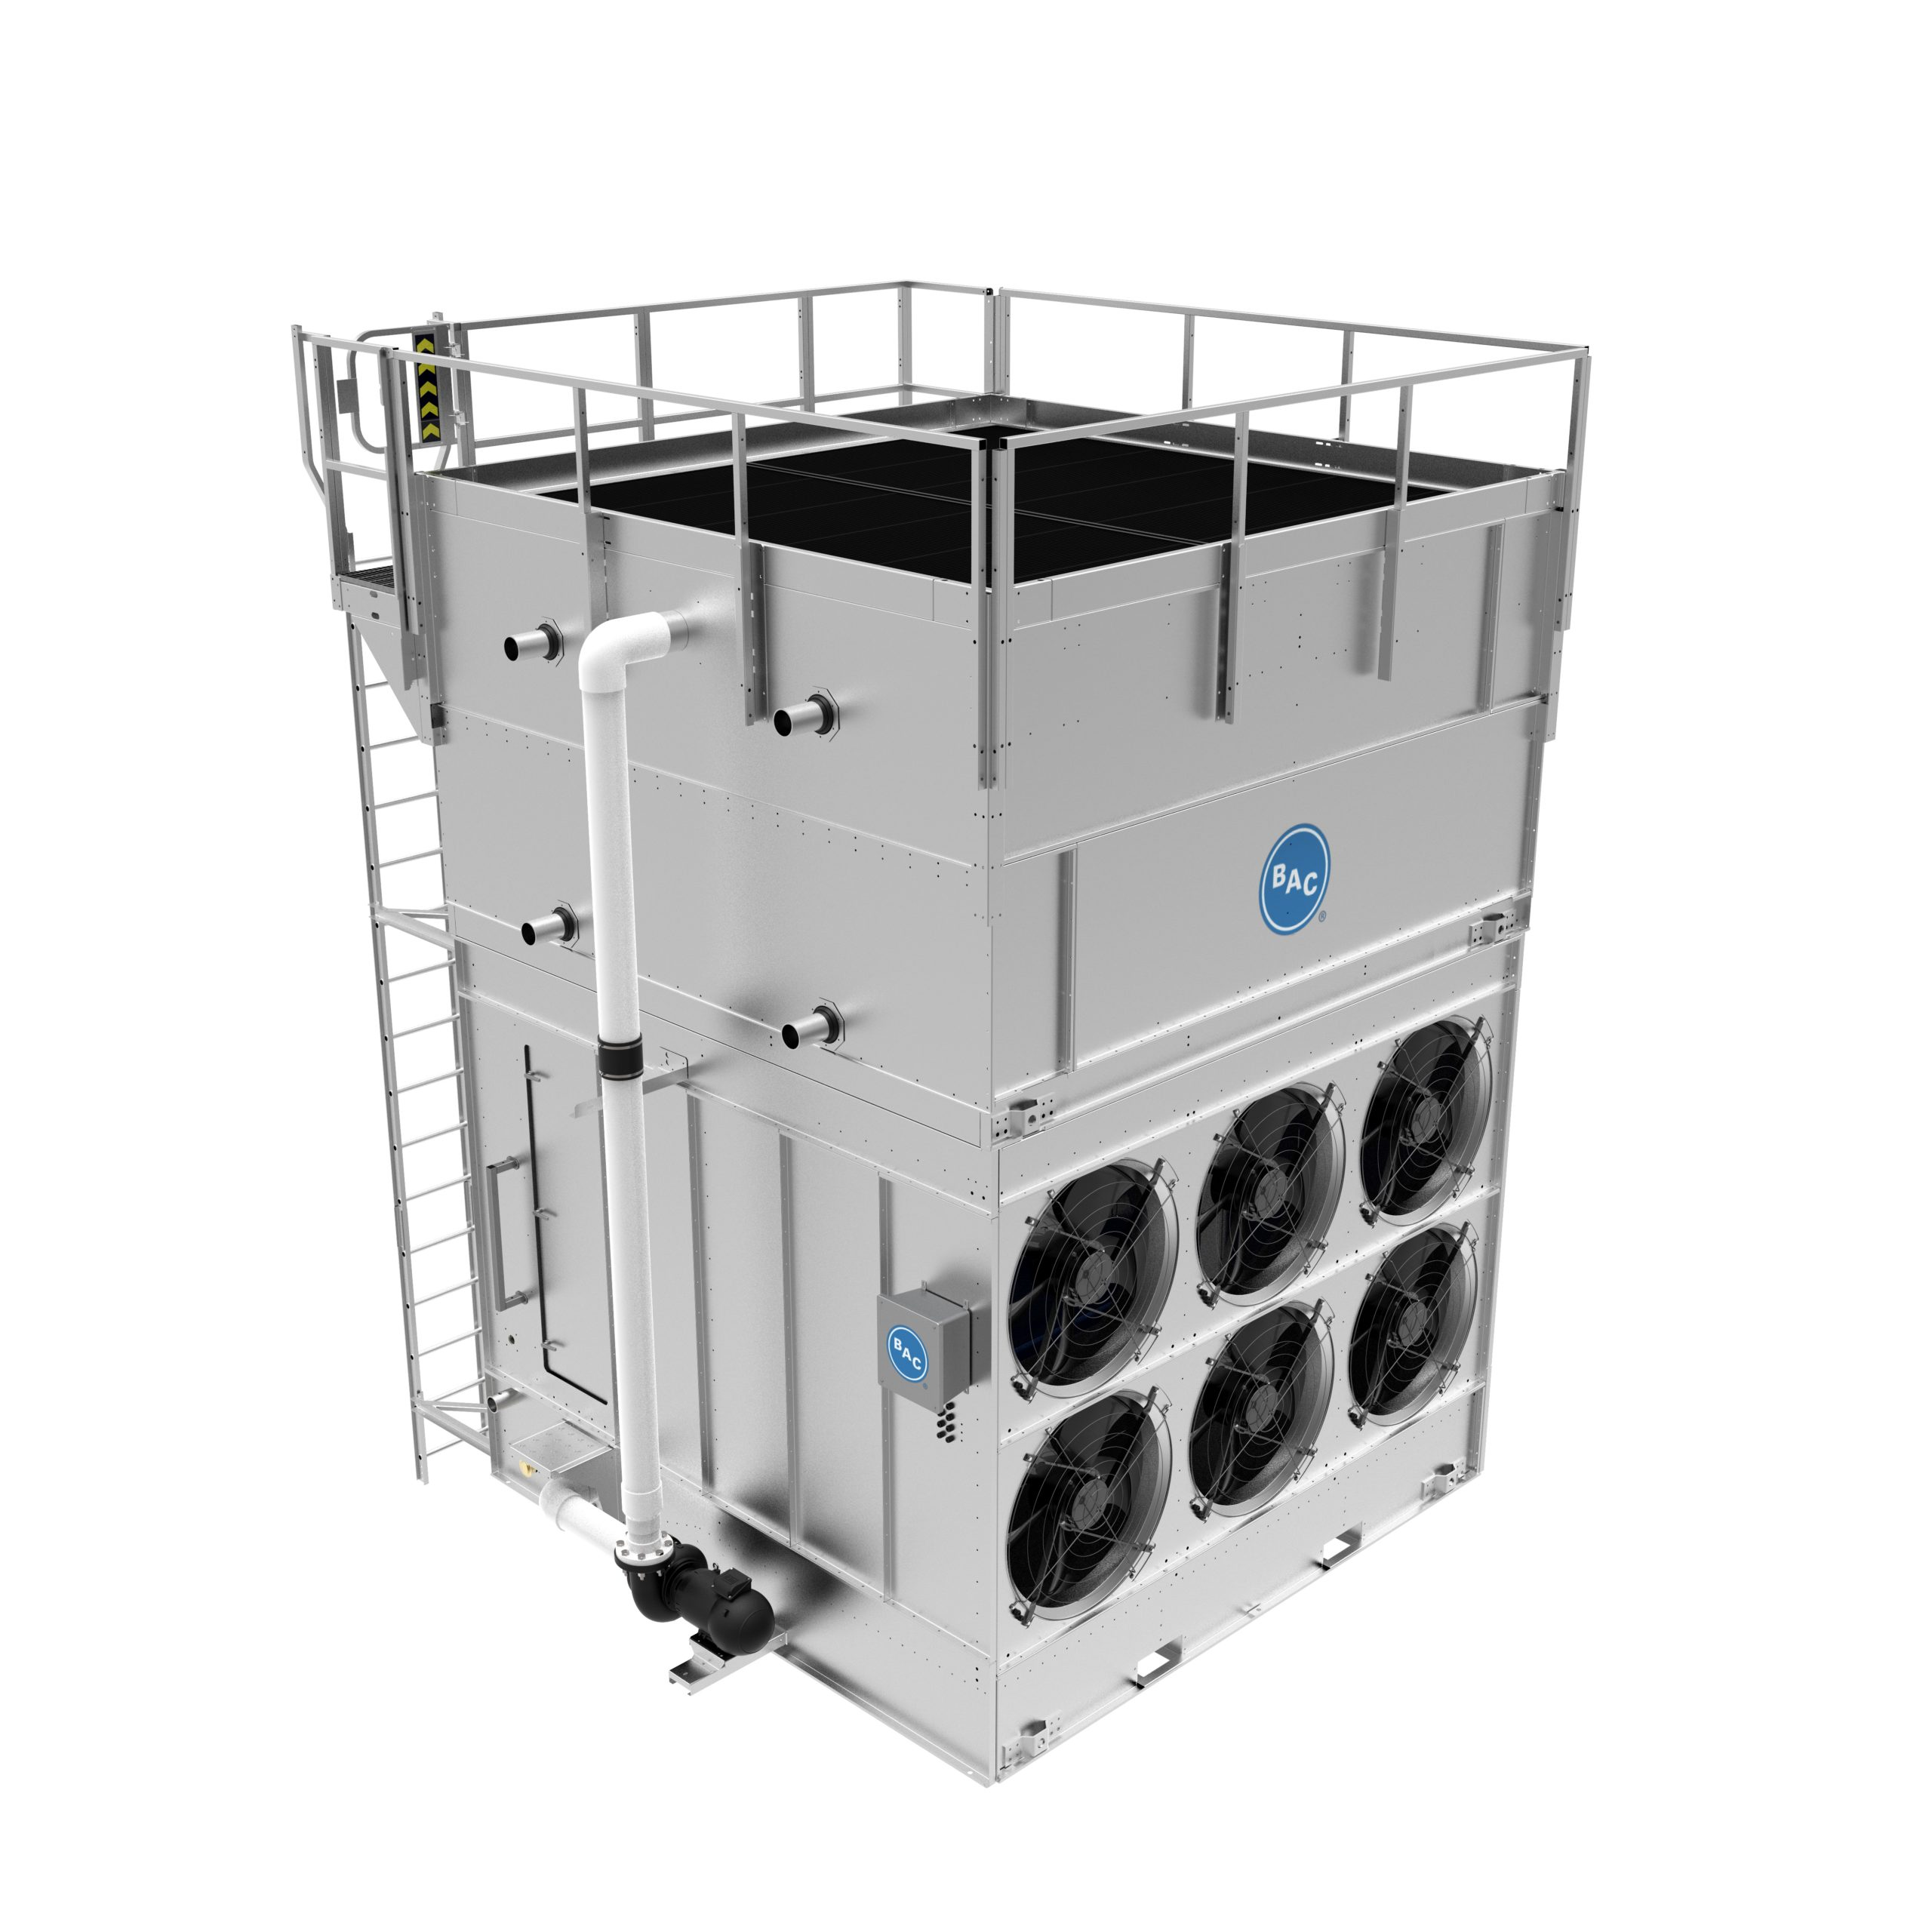 BAC introduces Vertex Evaporative Condenser